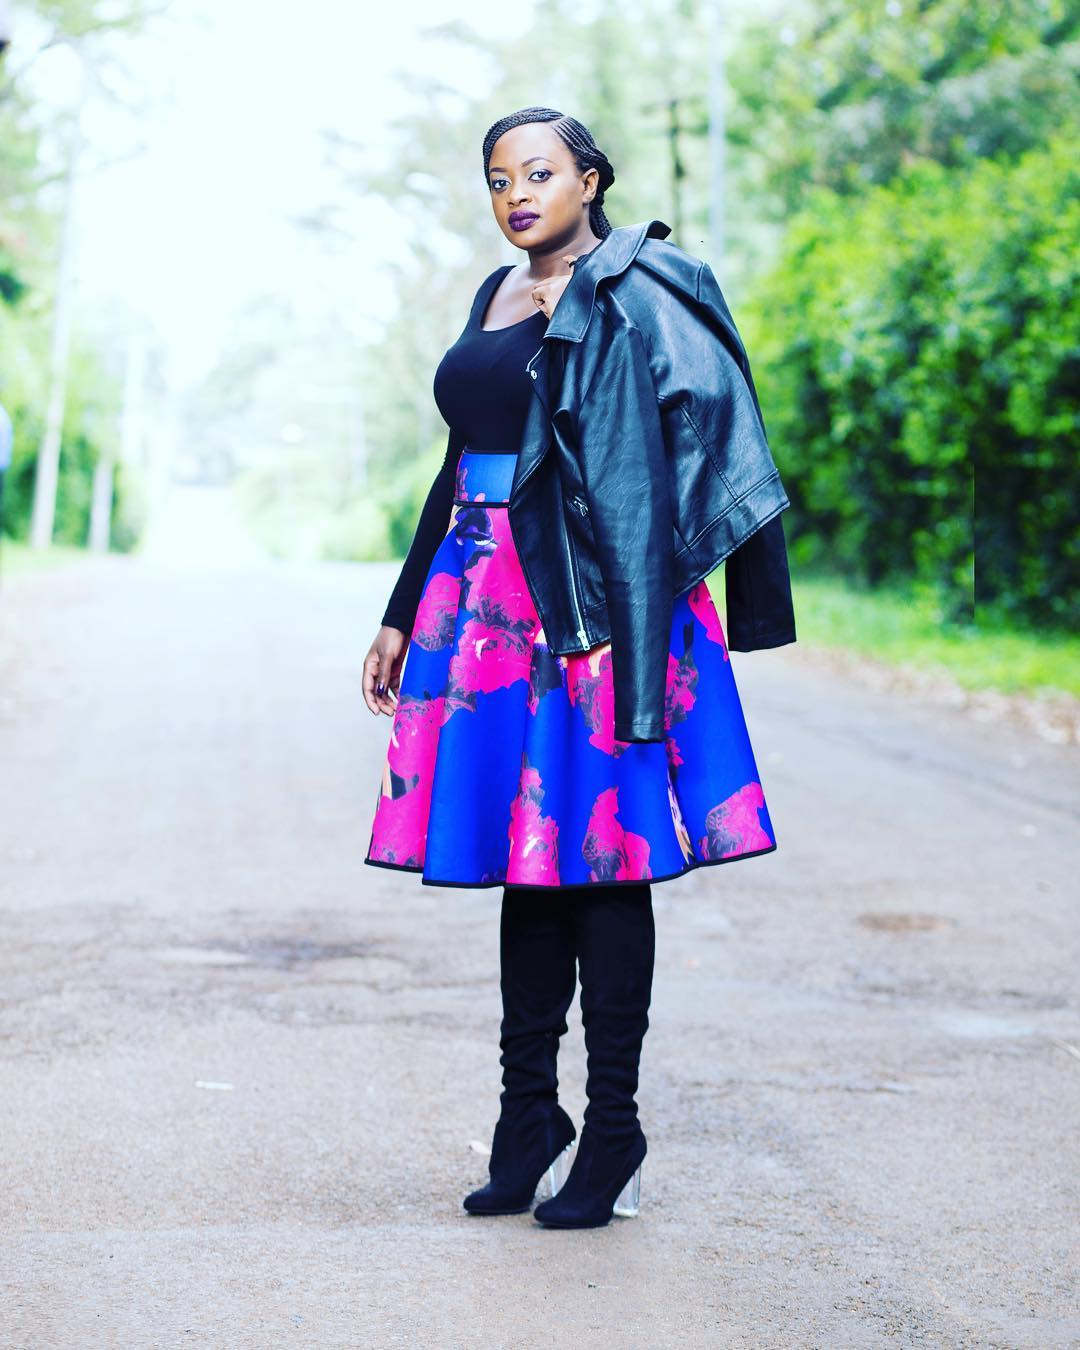 37727180 234623537189594 3779065732894031872 n - 'I was angry with God,' Janet Mbugua's sister-in-law talks miscarriages